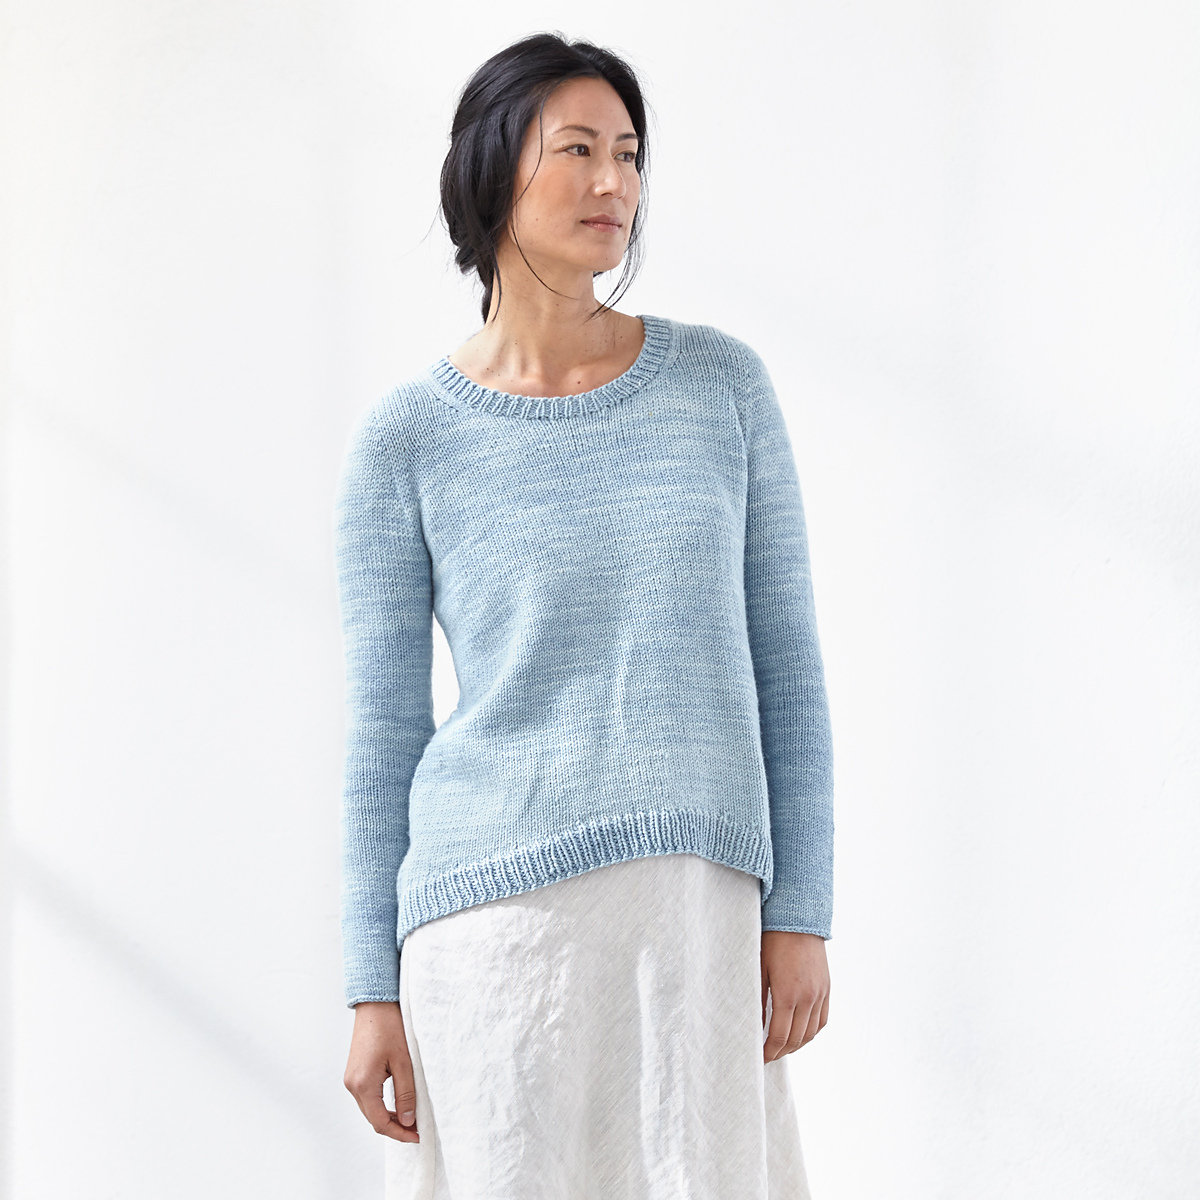 cocoknits-sweater-workshop-molly-b-front